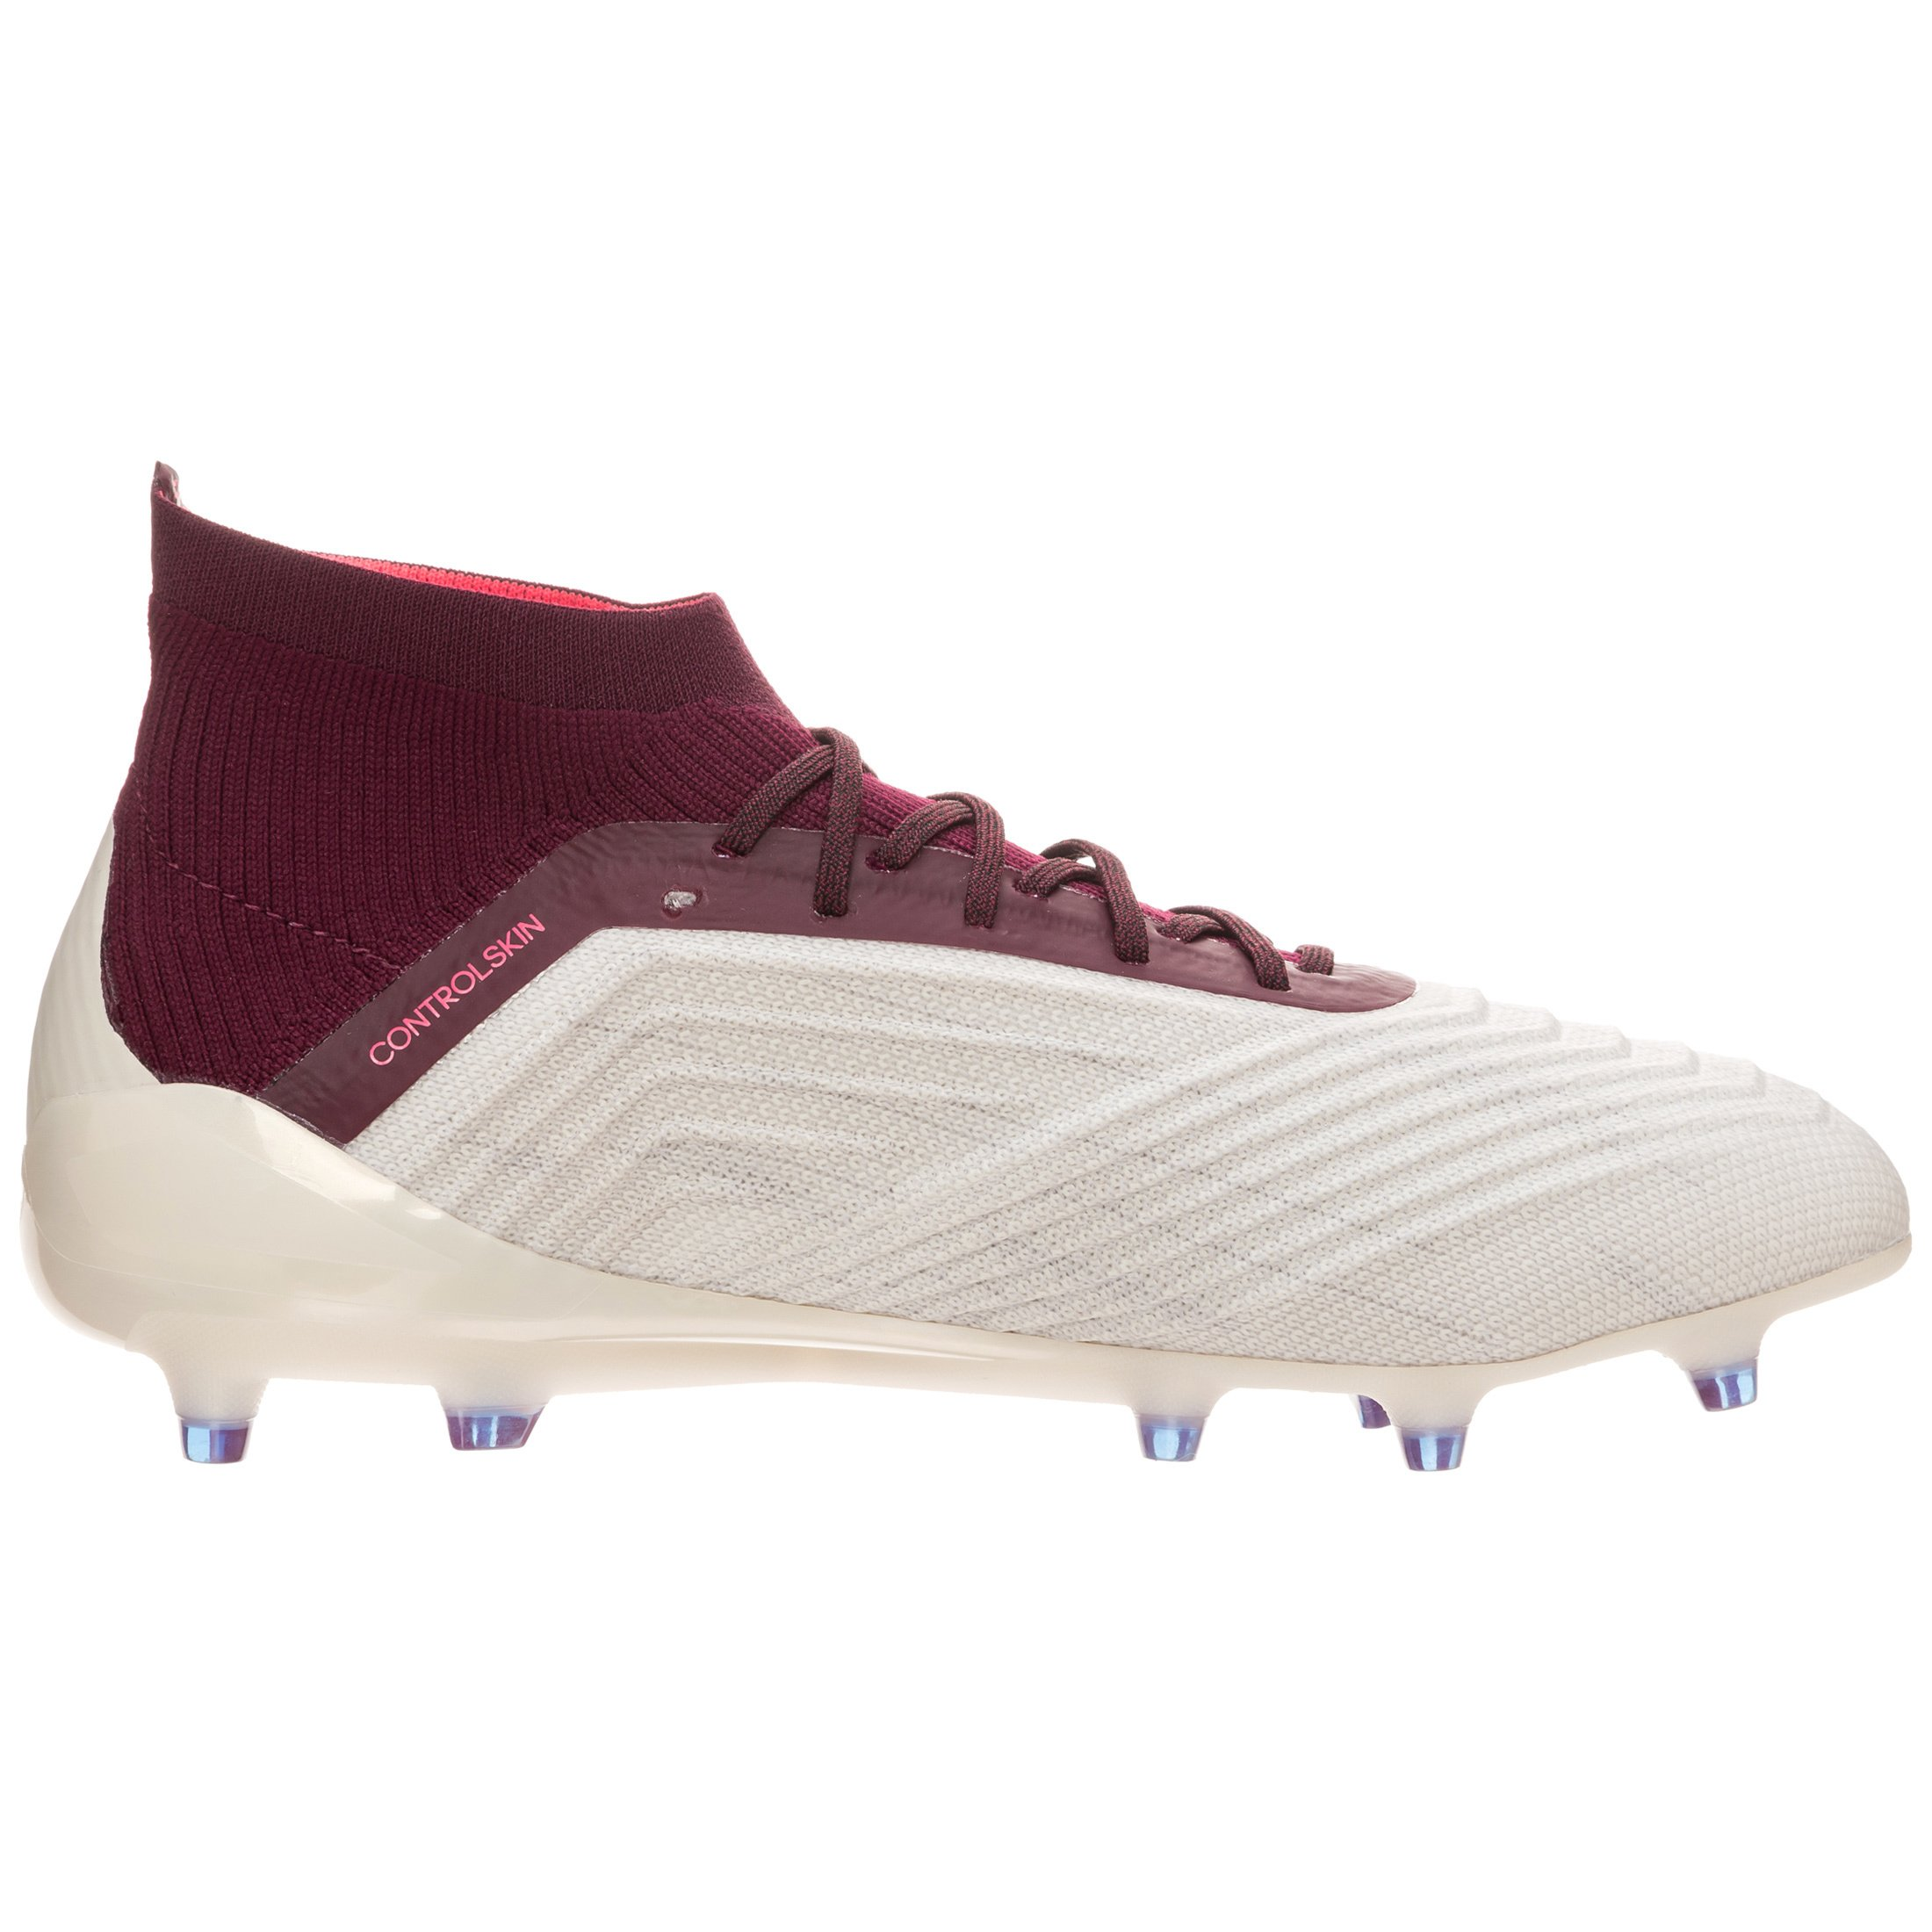 Adidas Womens Predator 18.1 Firm Ground Cleats - (Talc/Vapor Grey Metallic/Maroon) (9-)